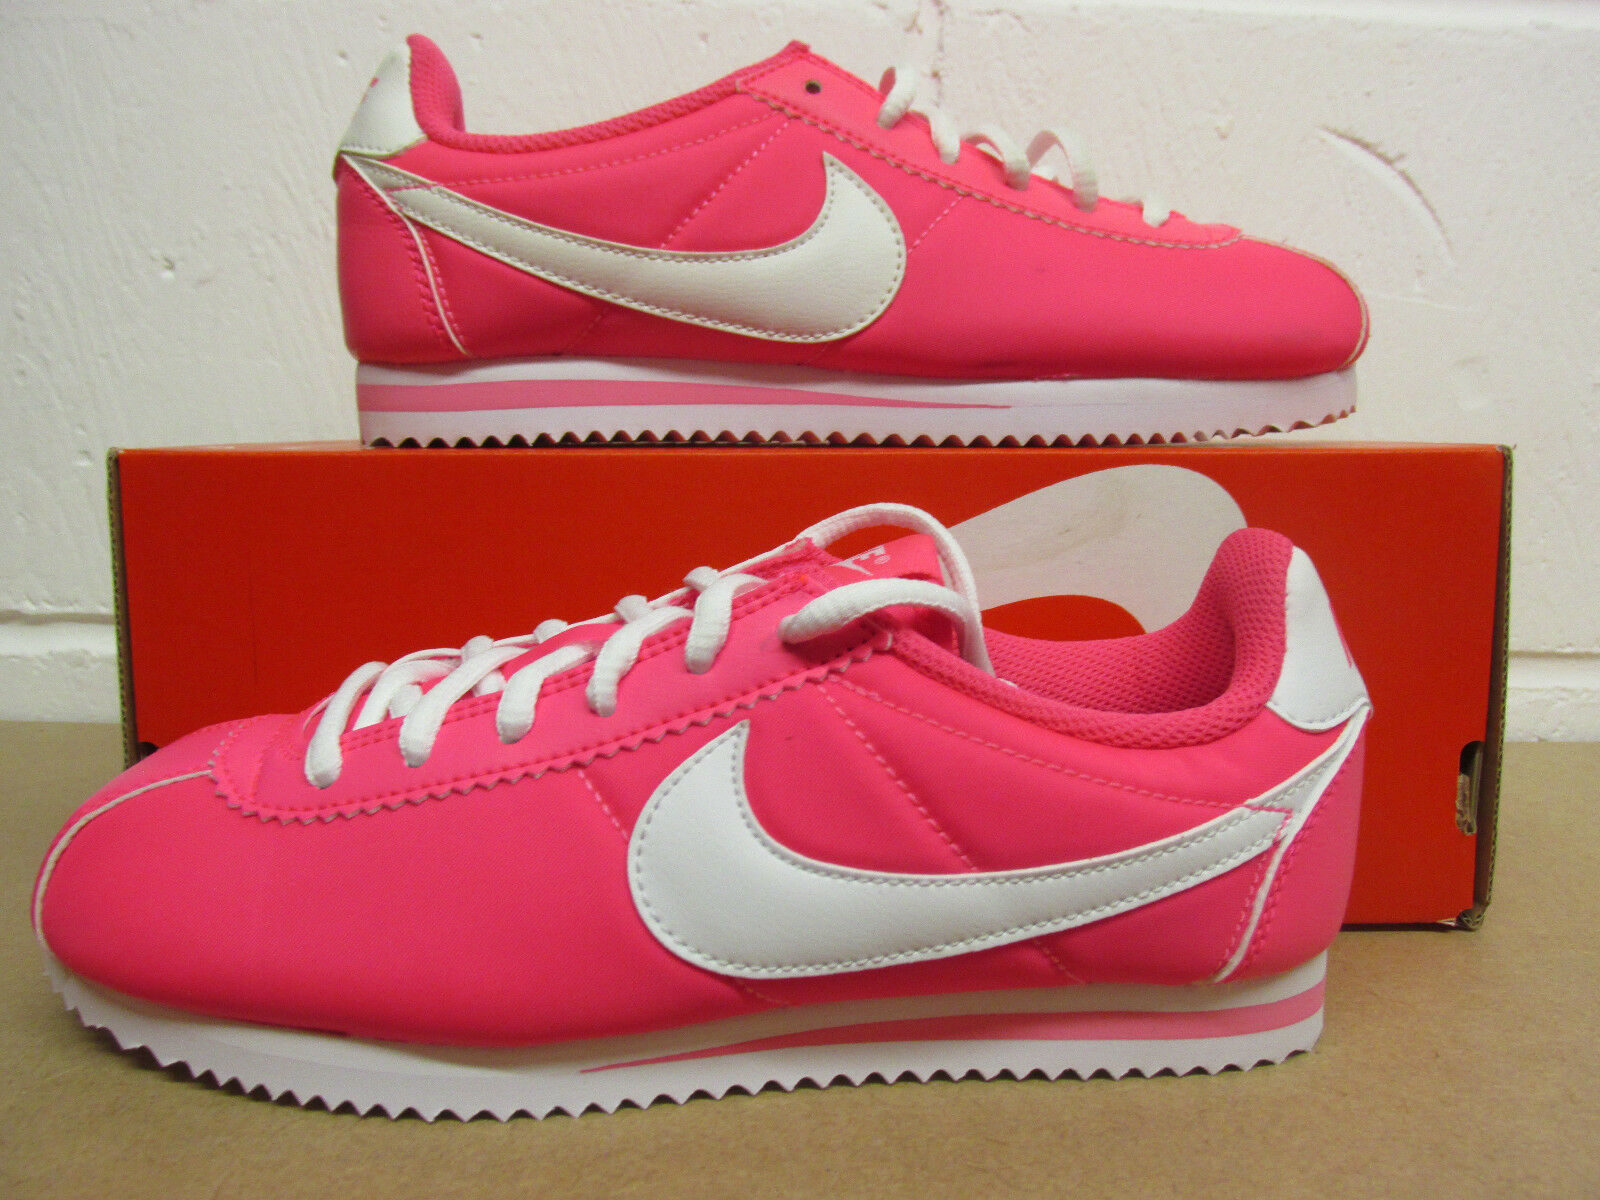 Nike Cortez Nylon (GS) Trainers 749512 601 Sneakers Shoes